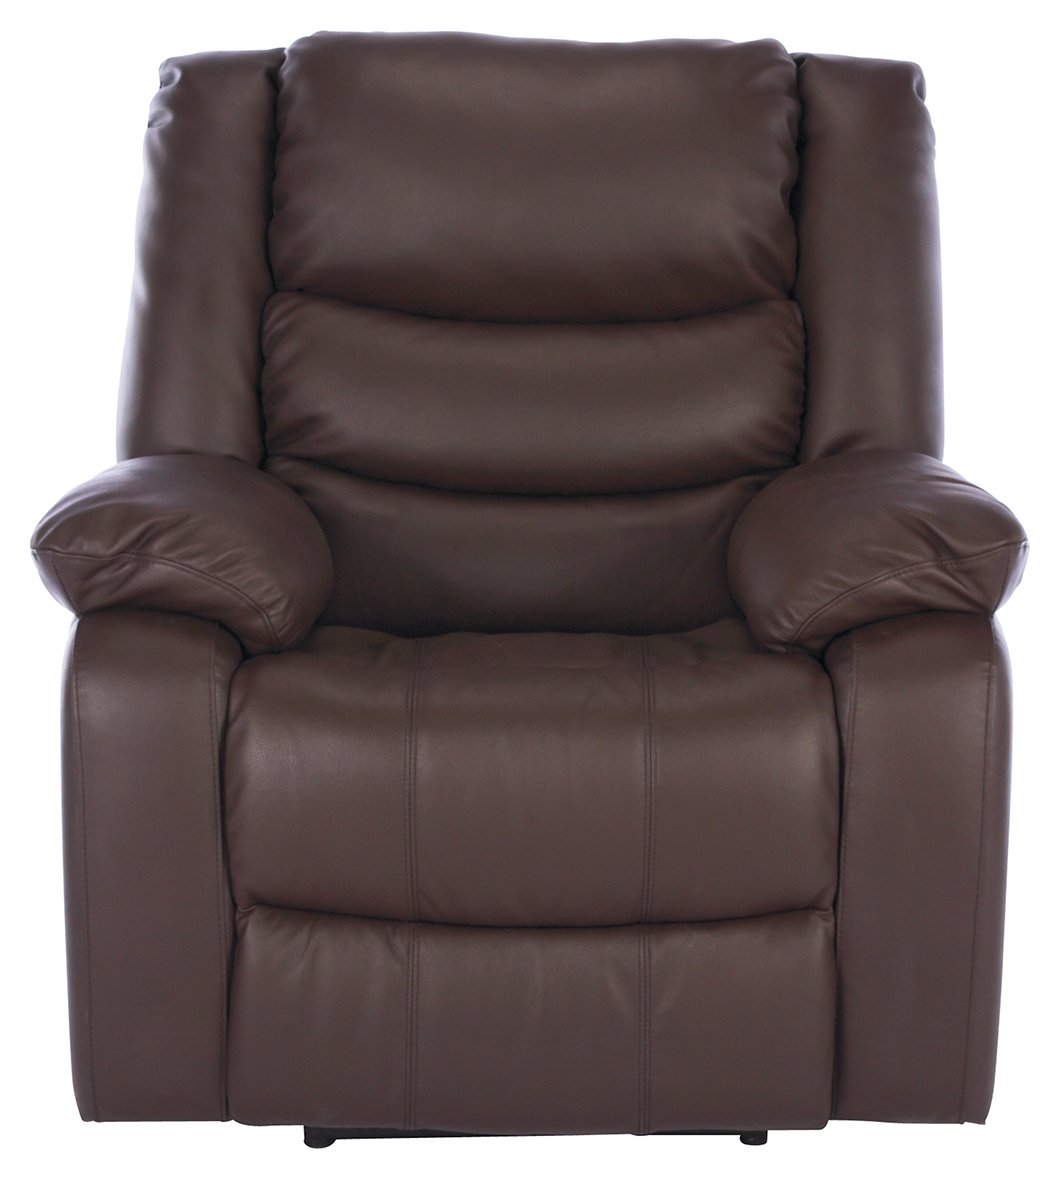 Argos Home Leather Massage Power Recliner Chair - Dark Brown